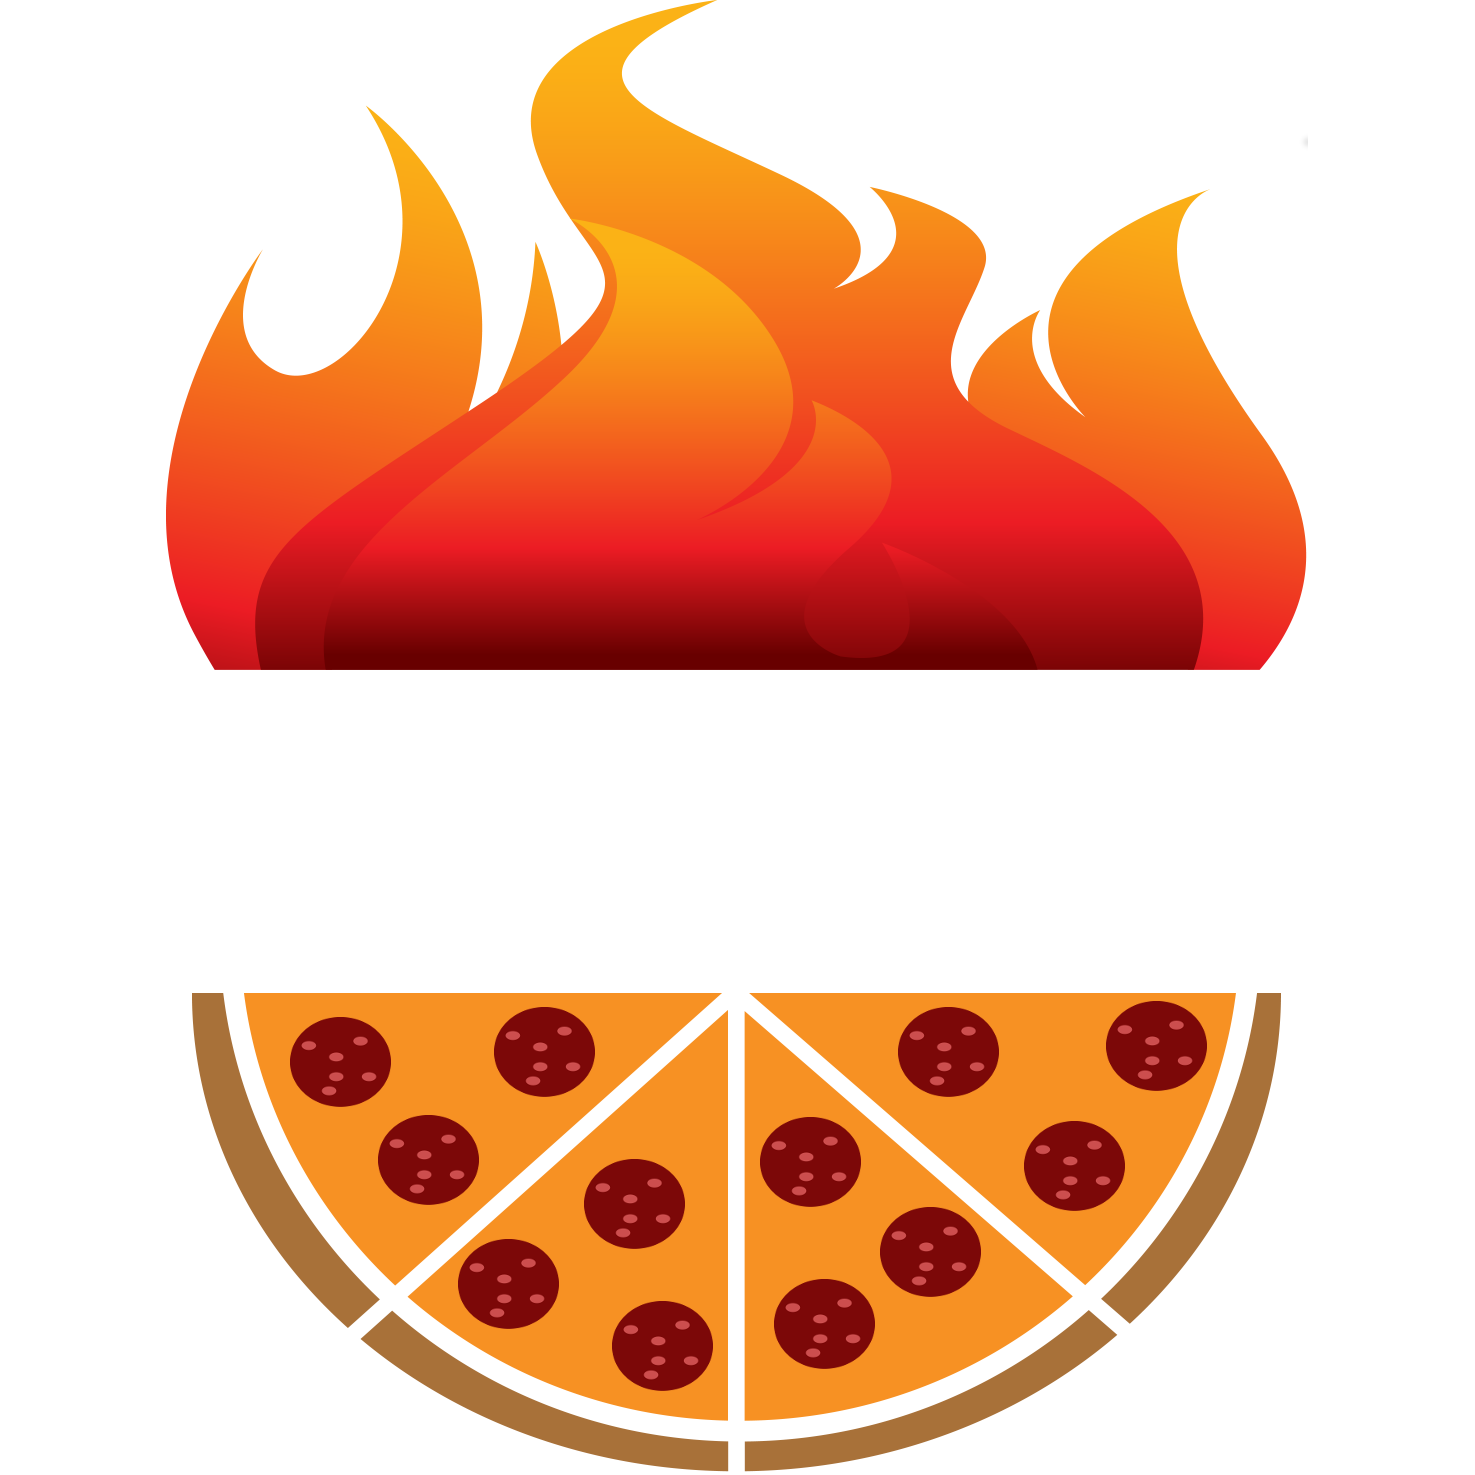 Clipart twice bitten apple graphic library download Craft Drinks — Zander's Woodfired Pizza graphic library download